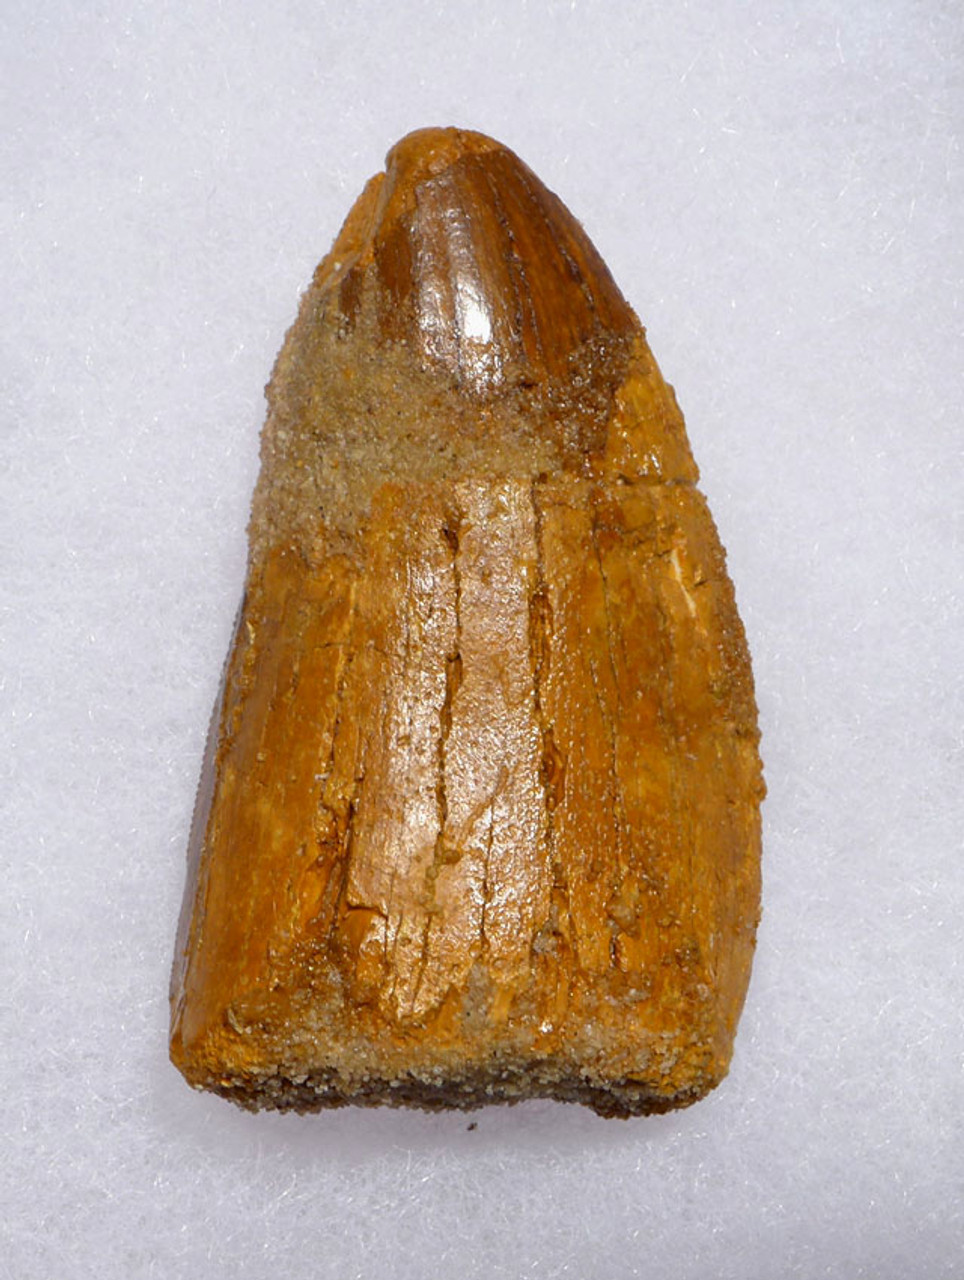 DT2-088 - FAT CARCHARODONTOSAURUS DINOSAUR FOSSIL TOOTH FROM THE LARGEST MEAT-EATING DINOSAUR